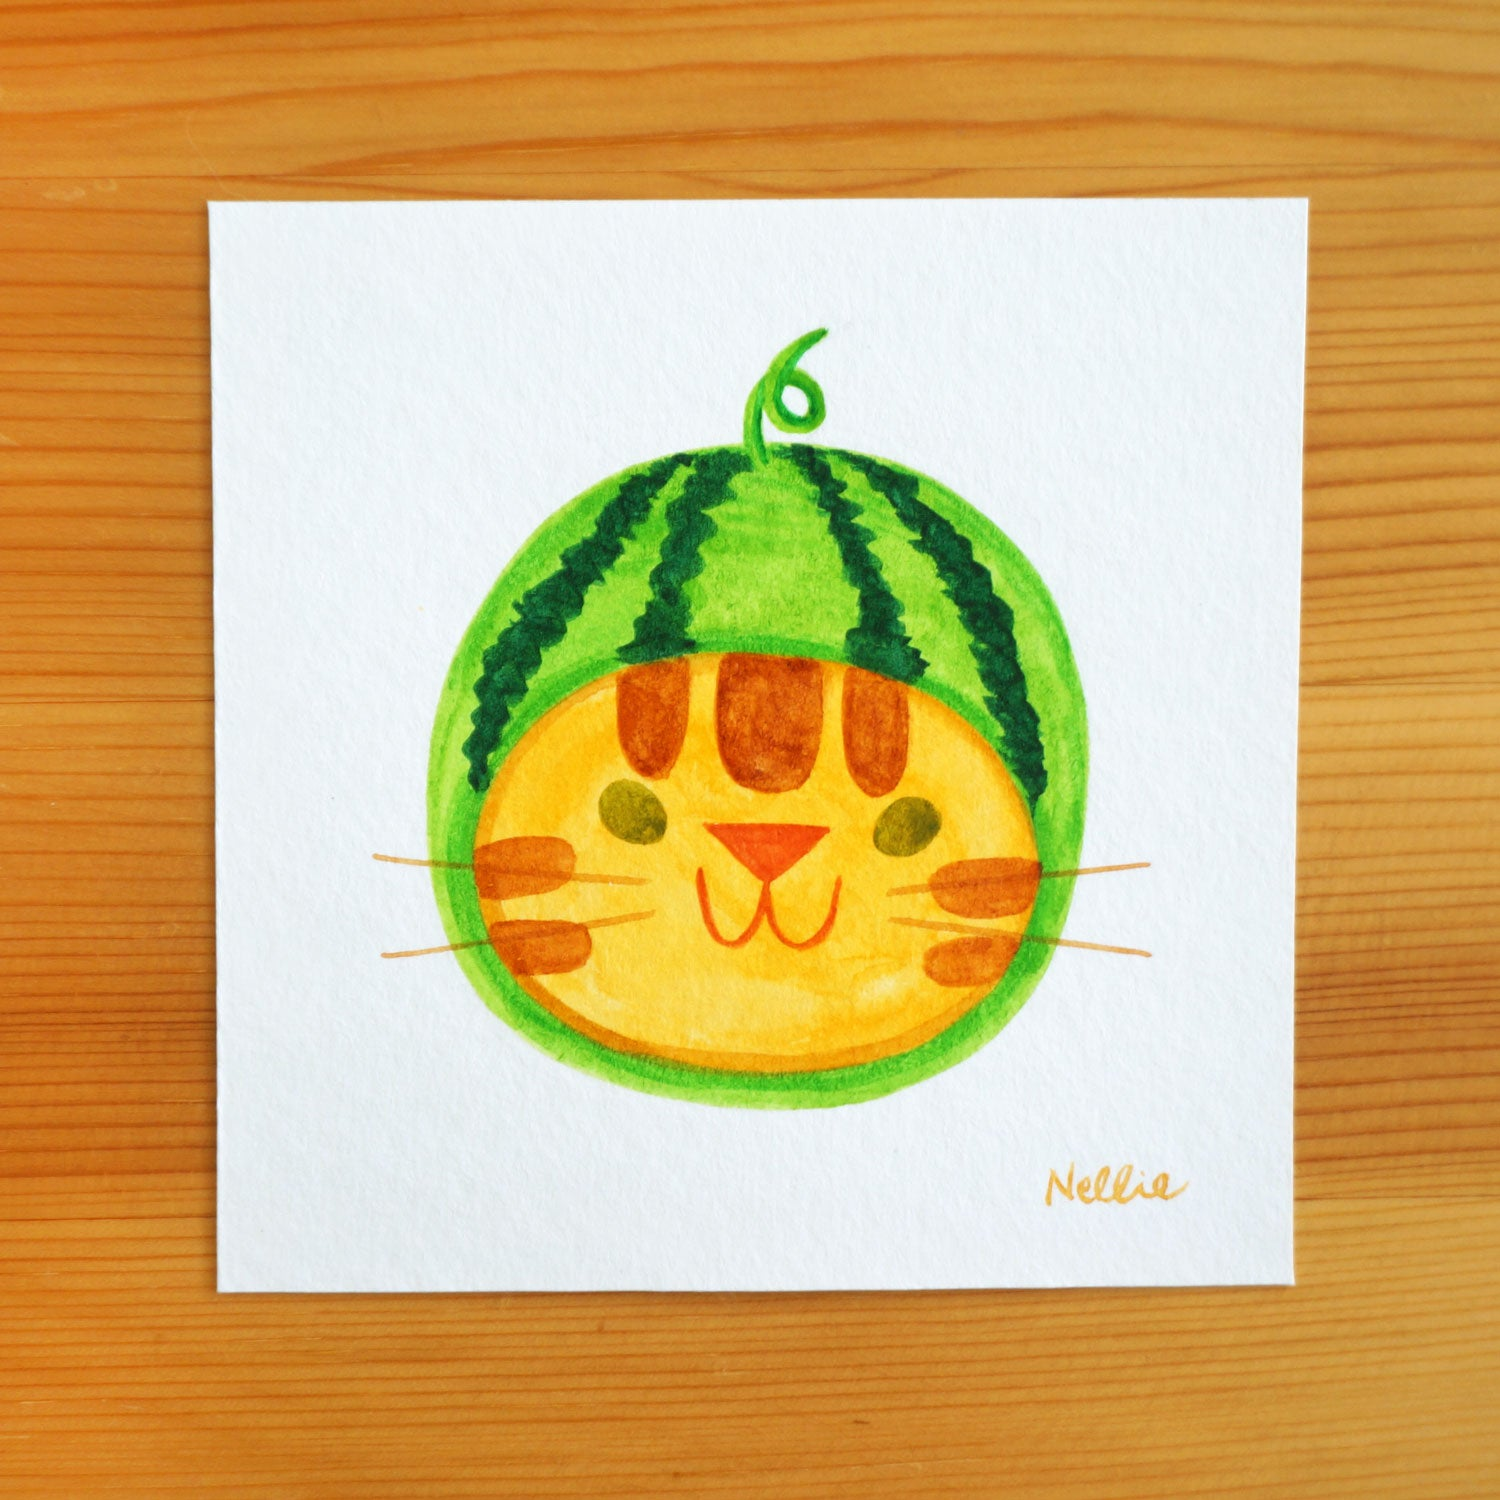 Watermelon Cat - Mini Painting